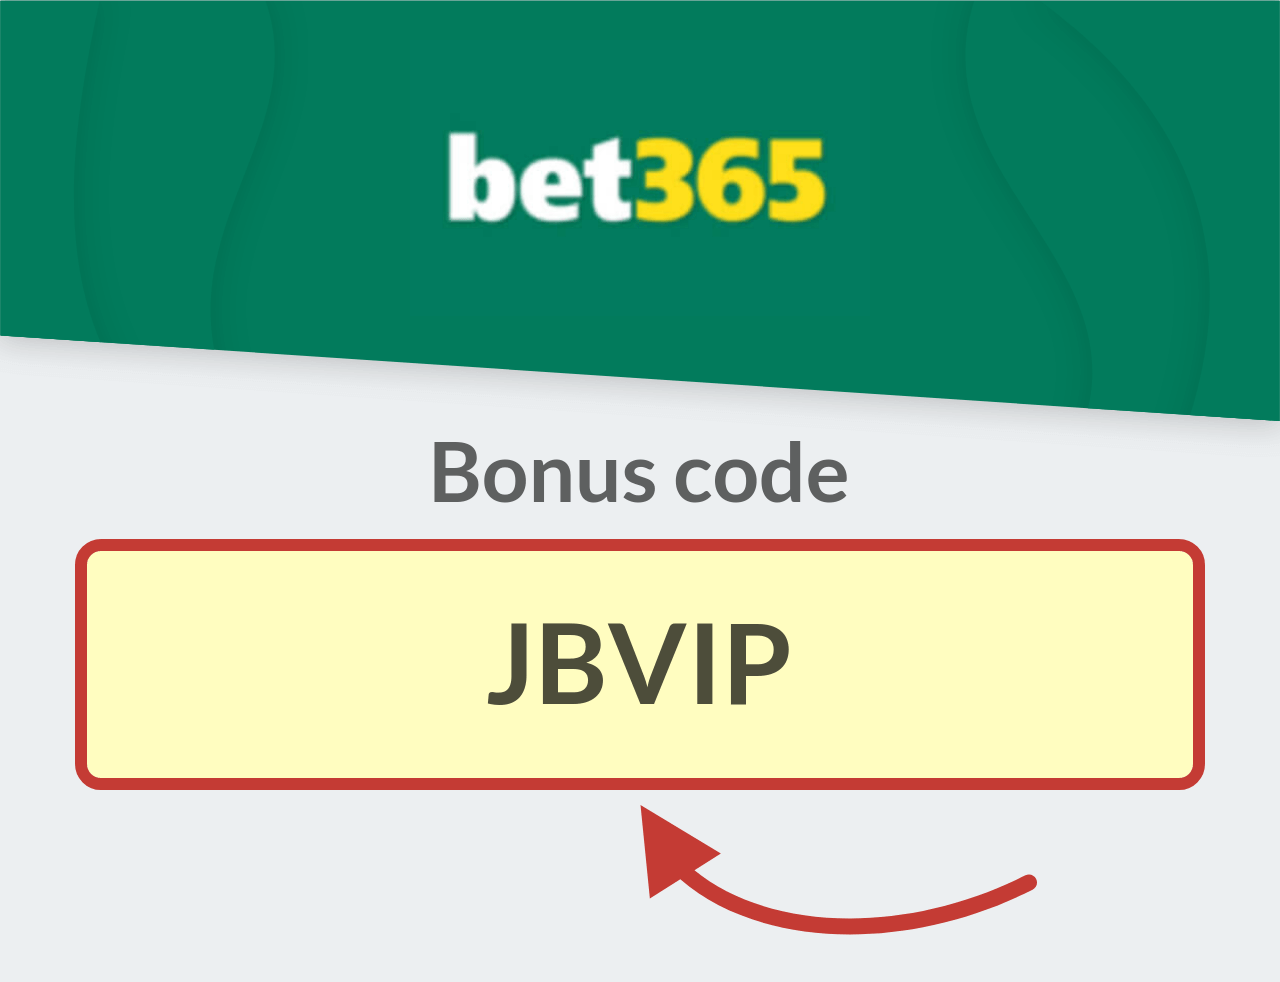 What is the Bonus Code for Bet365 2021?